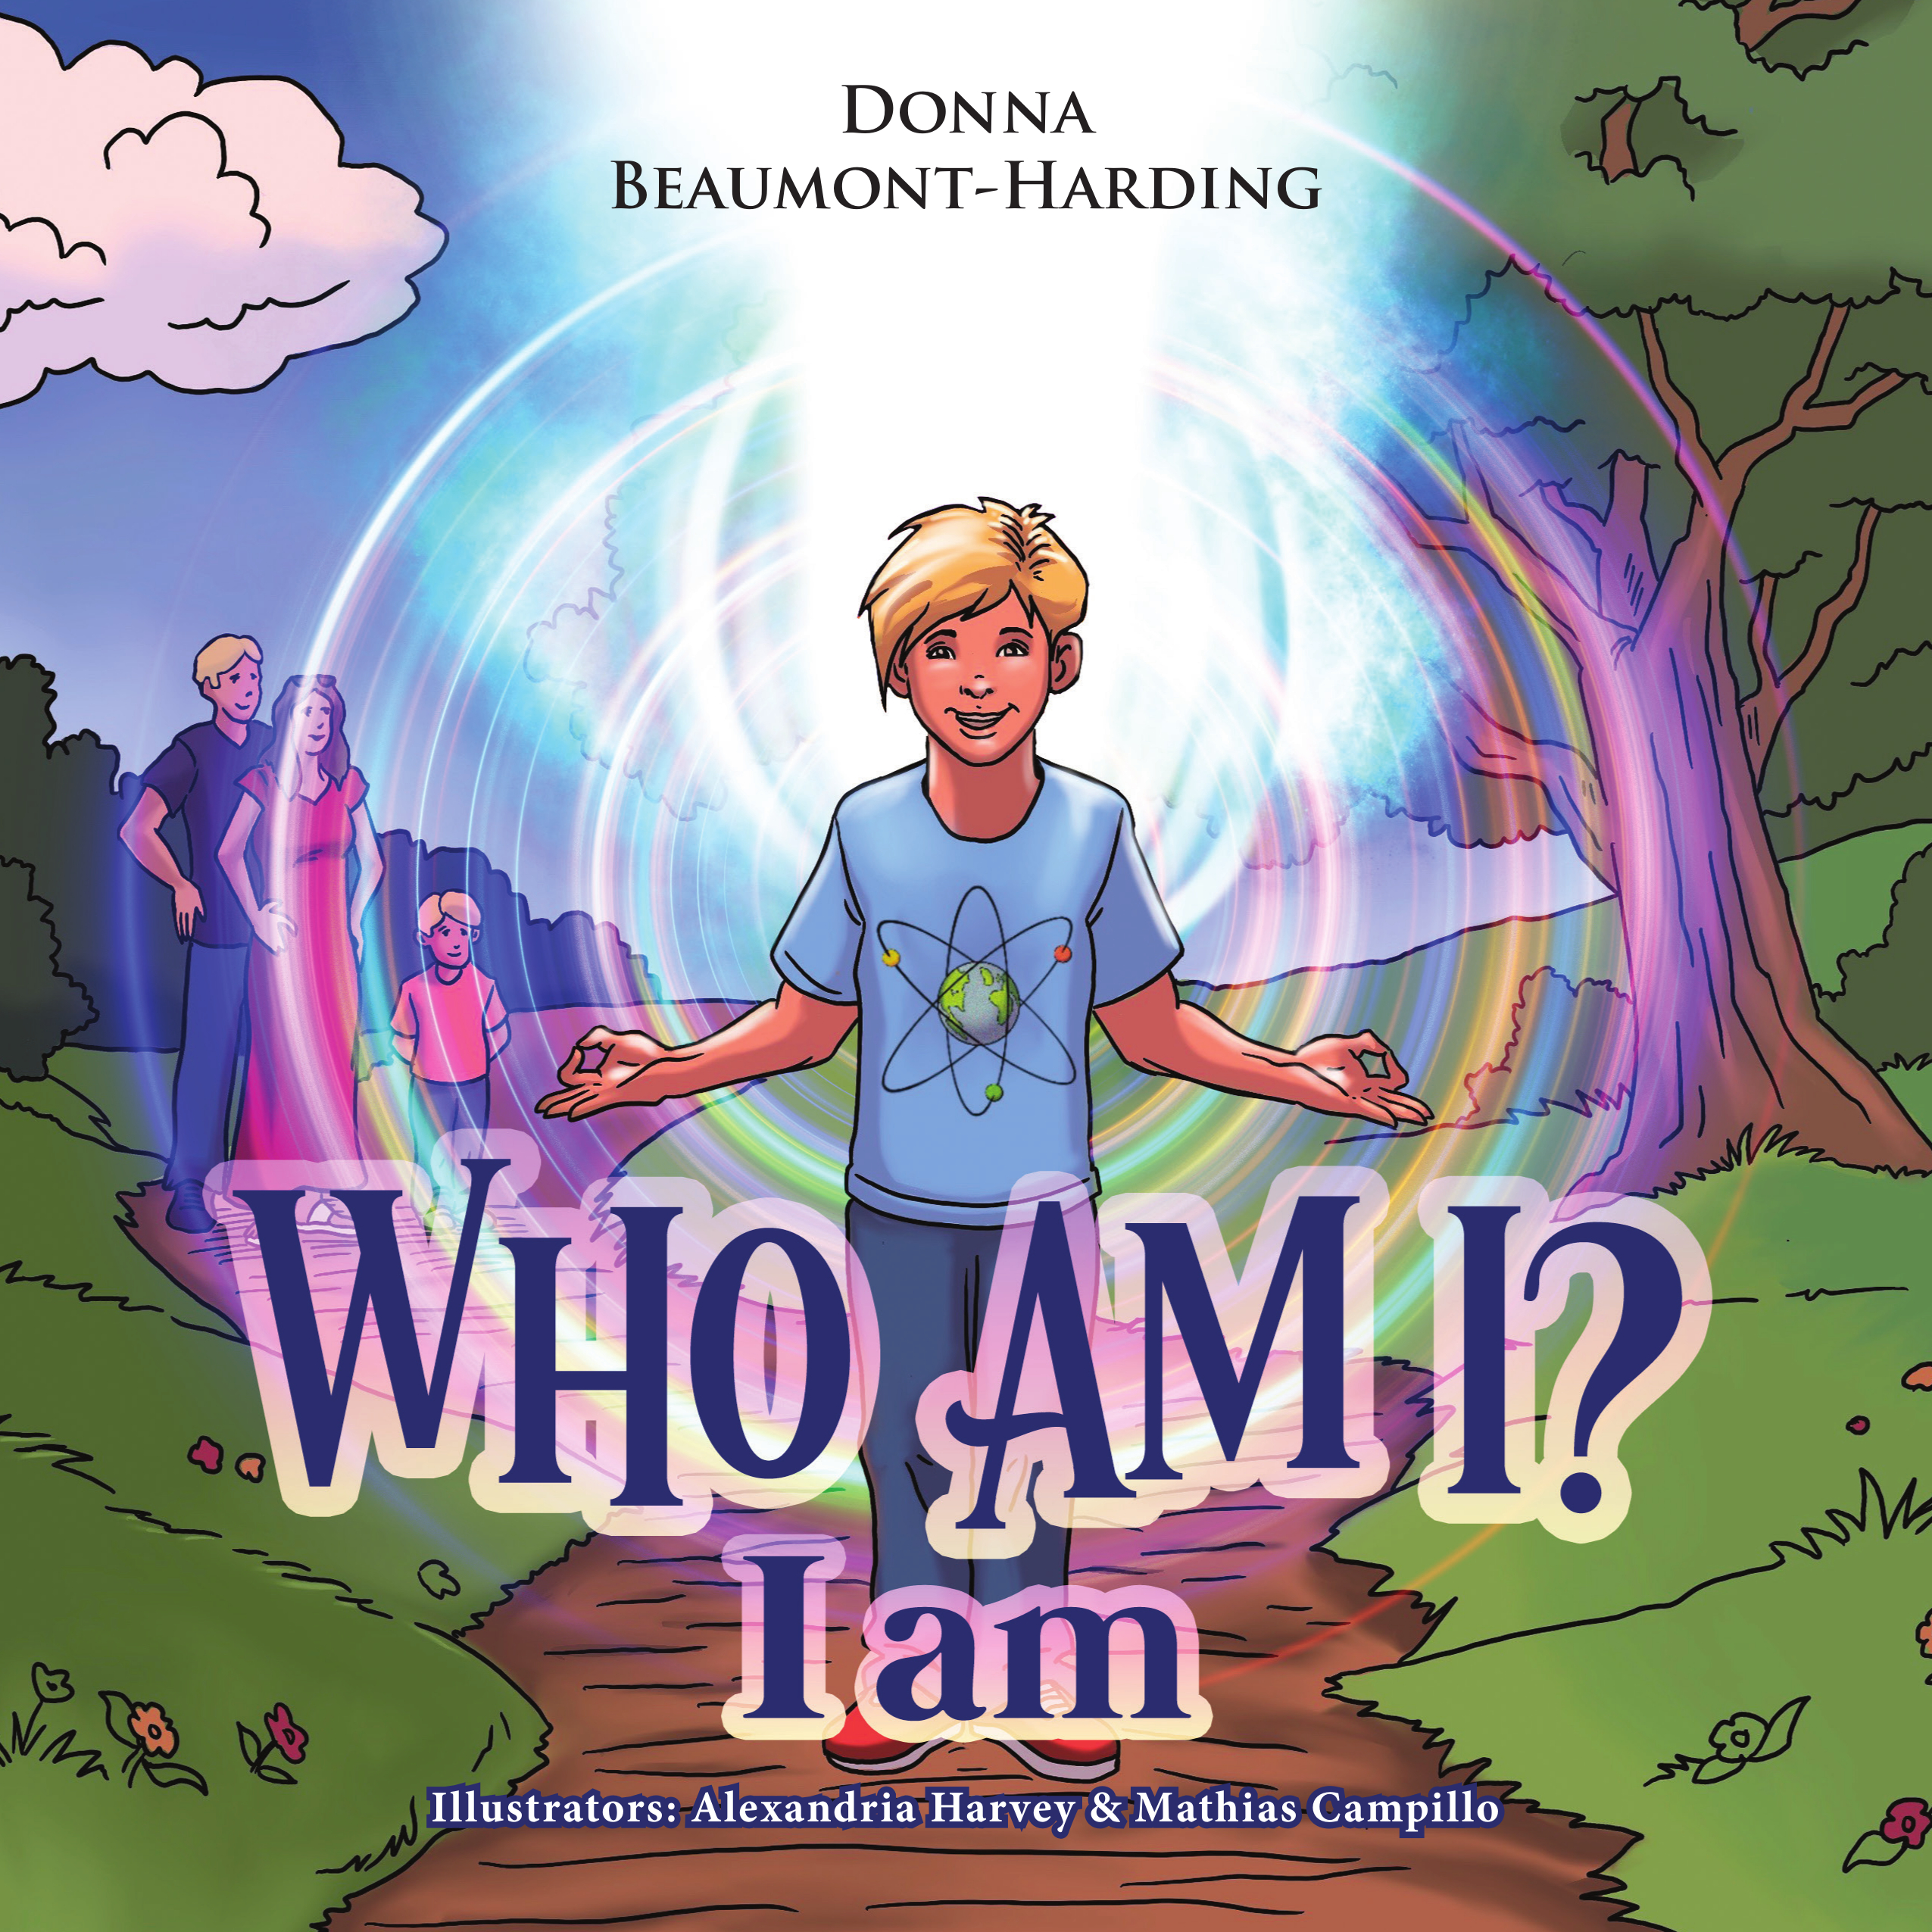 Donna Harding Shares a Remarkable Tale About Human Relationships and Nature